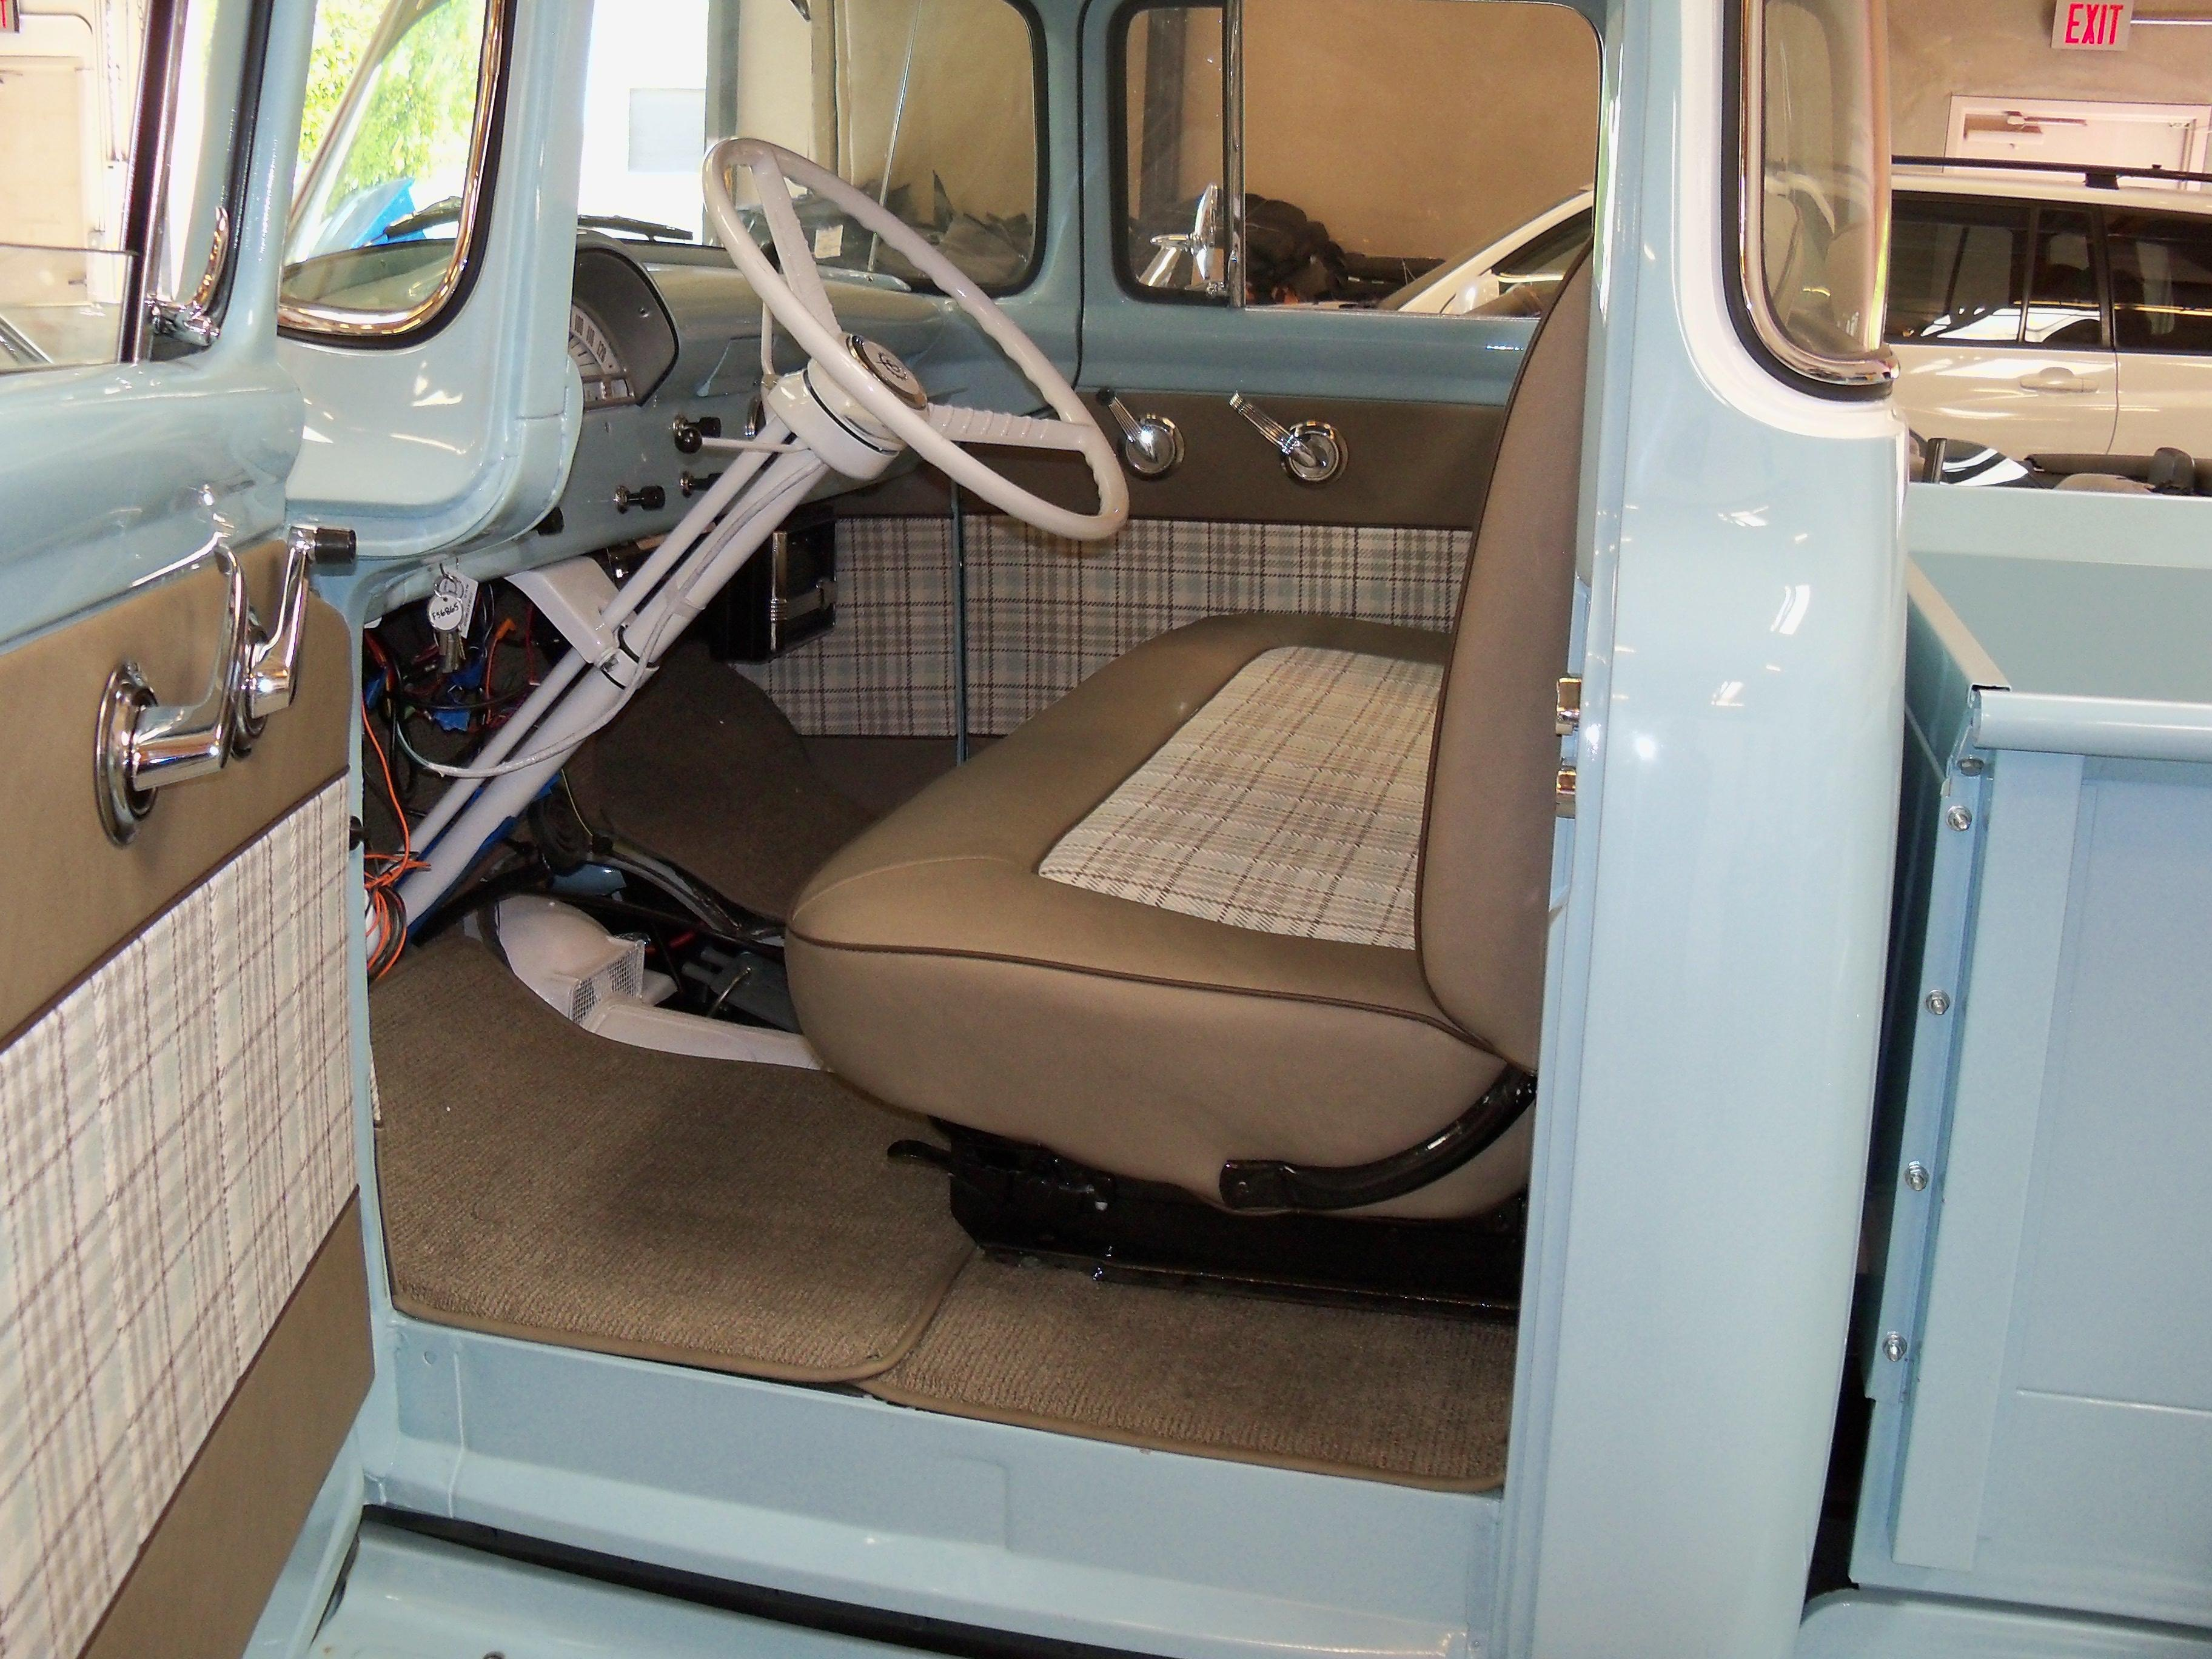 Auto Spa Upholstery Services image 9